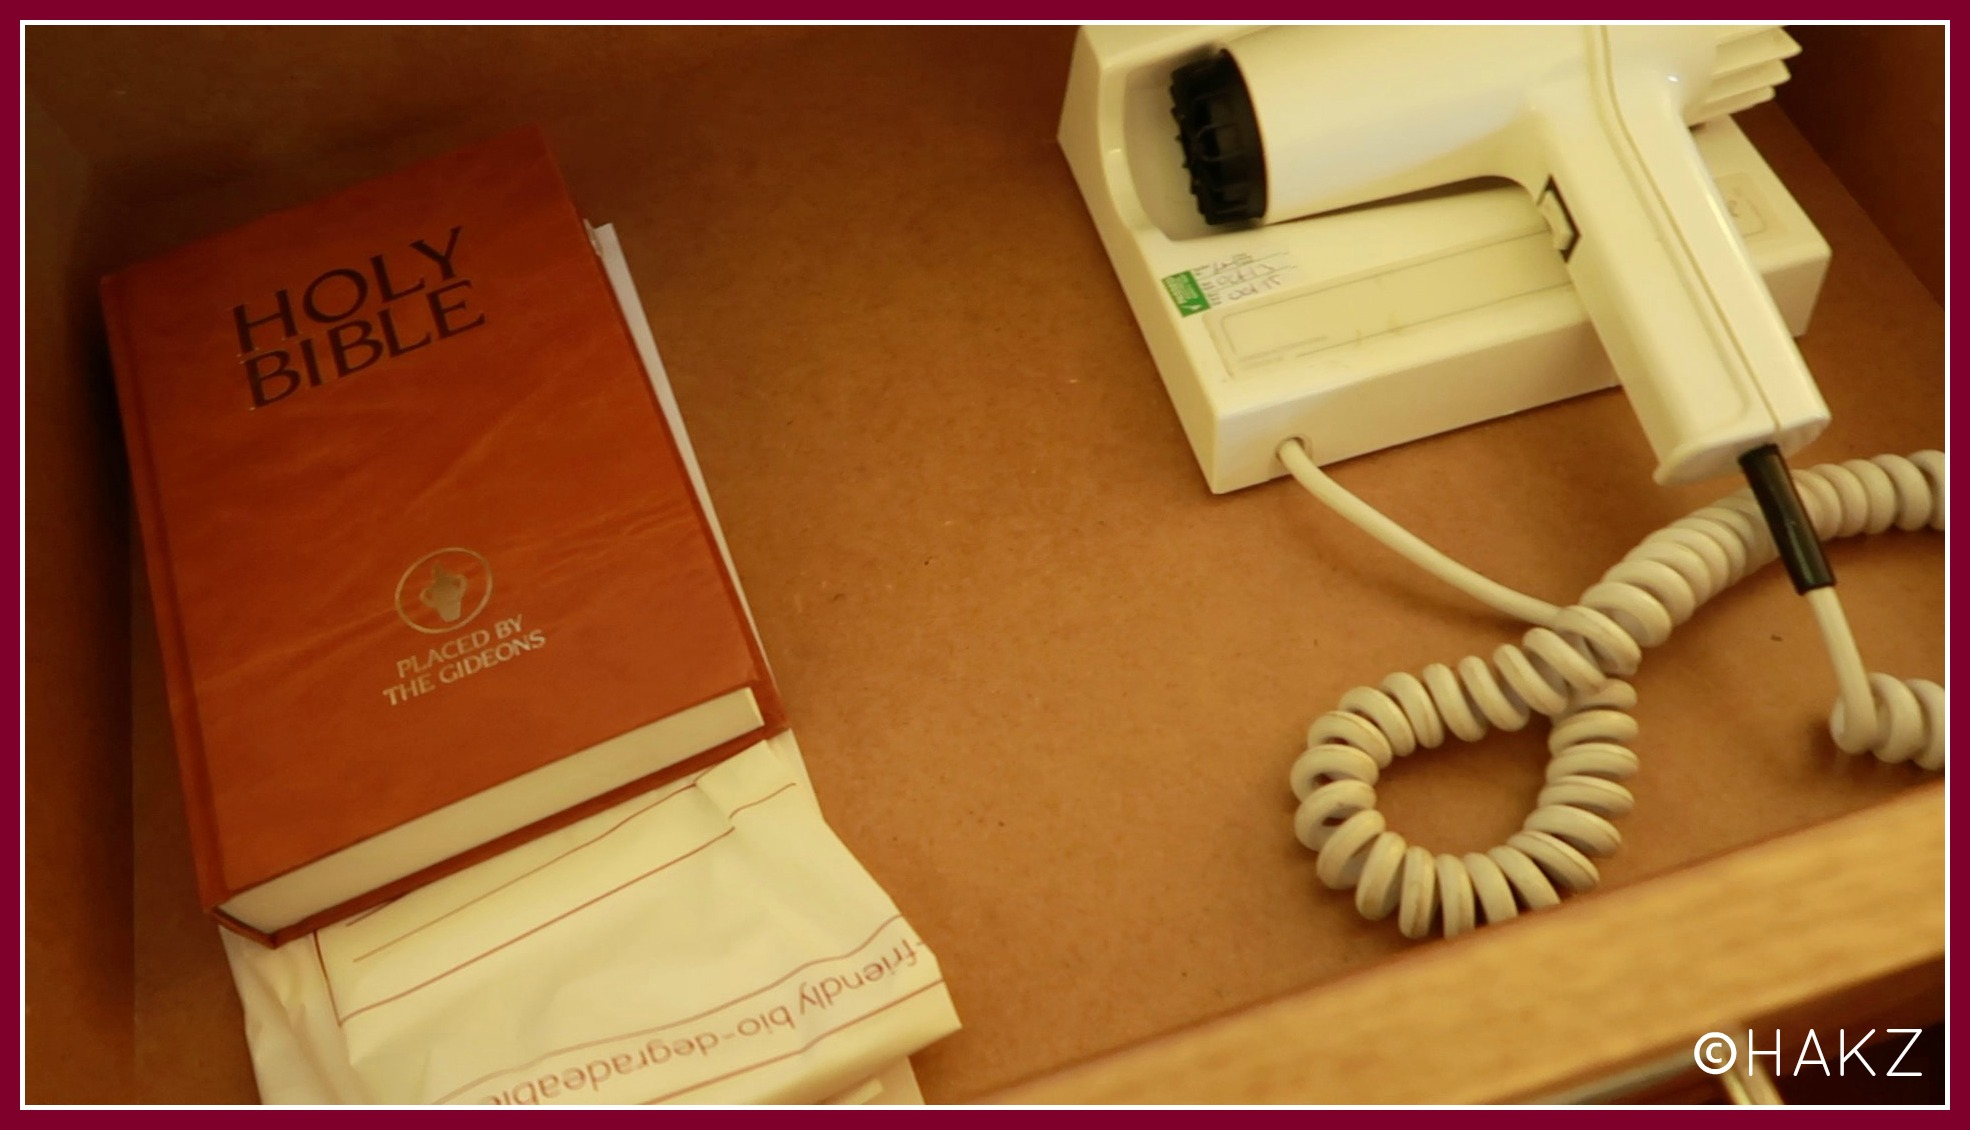 Manchester Airport hotel and parking: Clayton Hotel Manchester Airport bible and hairdryer